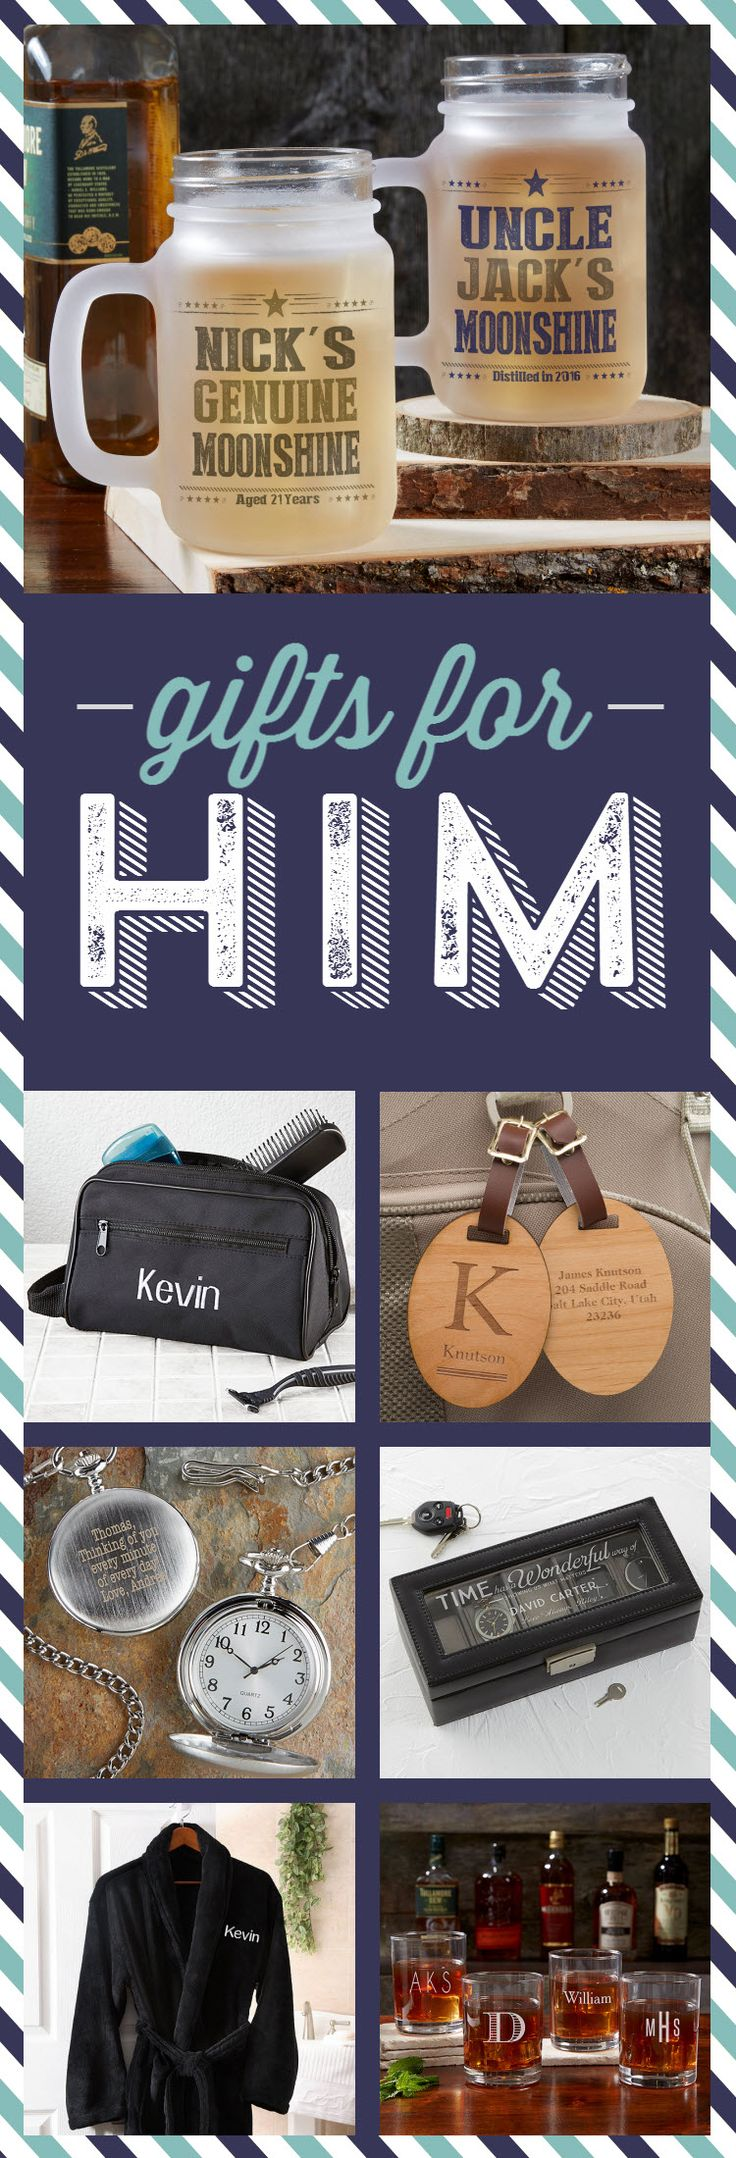 Hundreds of great gift ideas for guys! Personalized gifts that are perfect for Dads, Husbands, Boyfriends, Sons, Brothers, or any guy on your list!